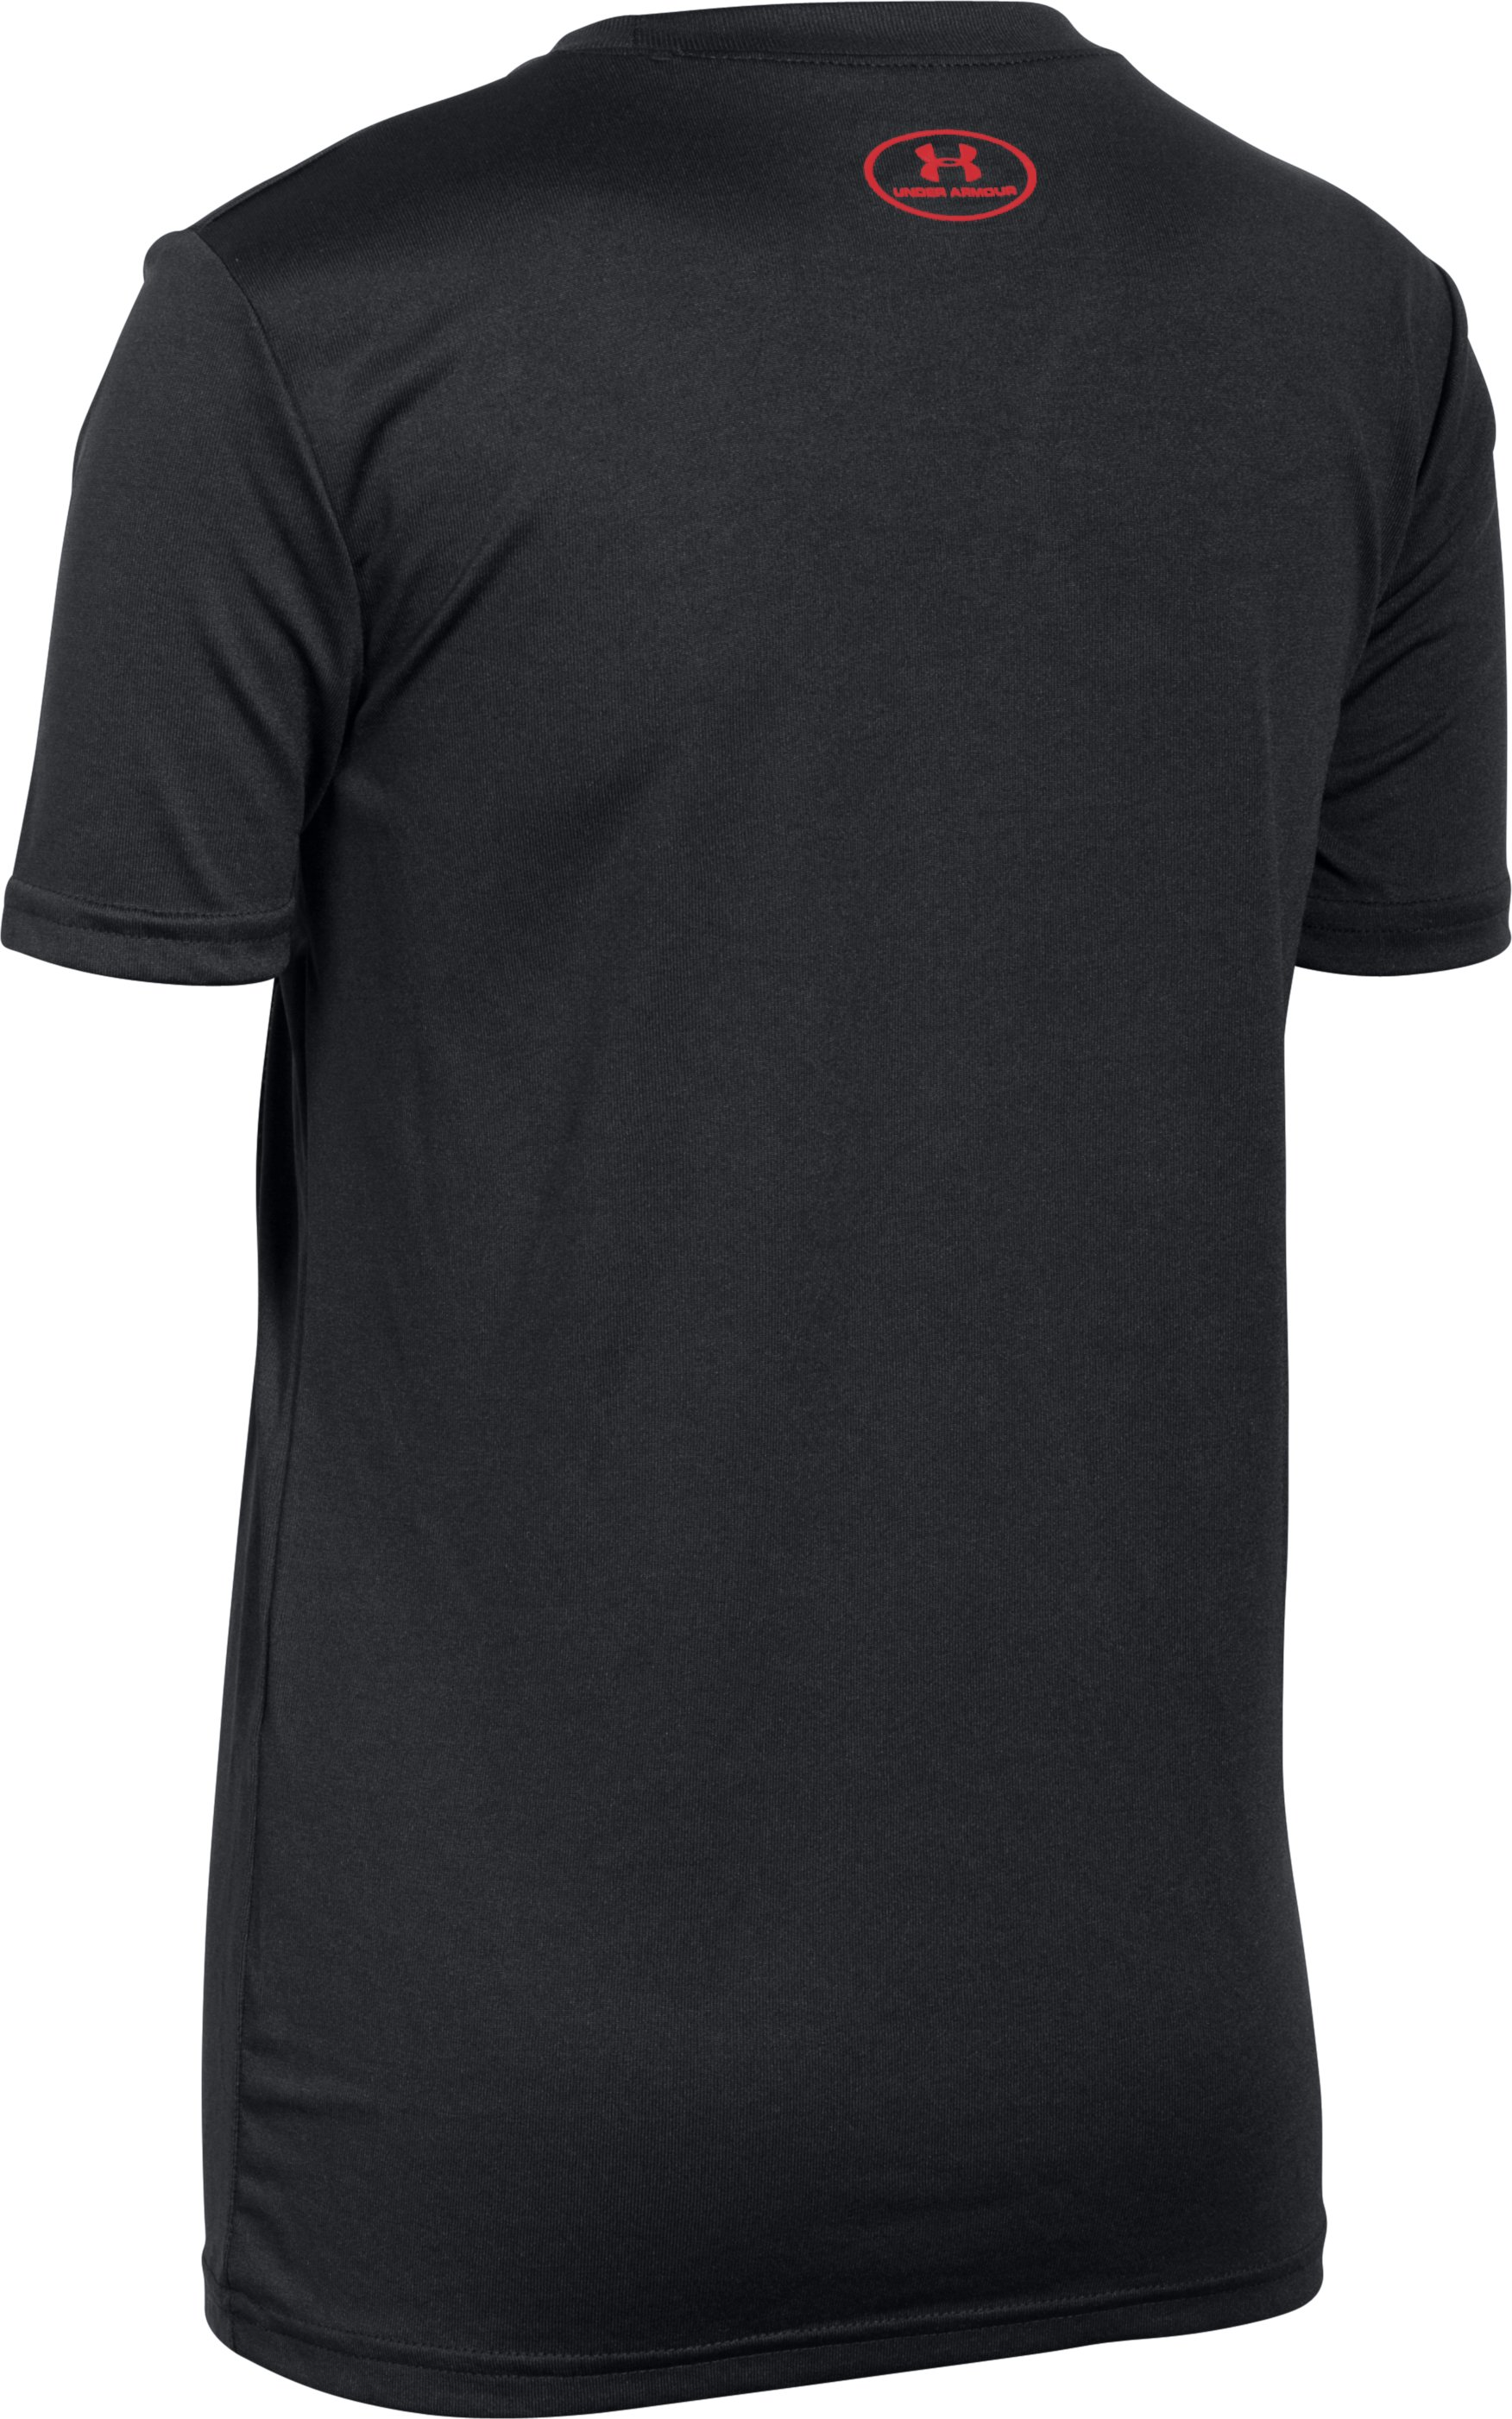 Boys' UA Refuse Defeat T-Shirt, Black